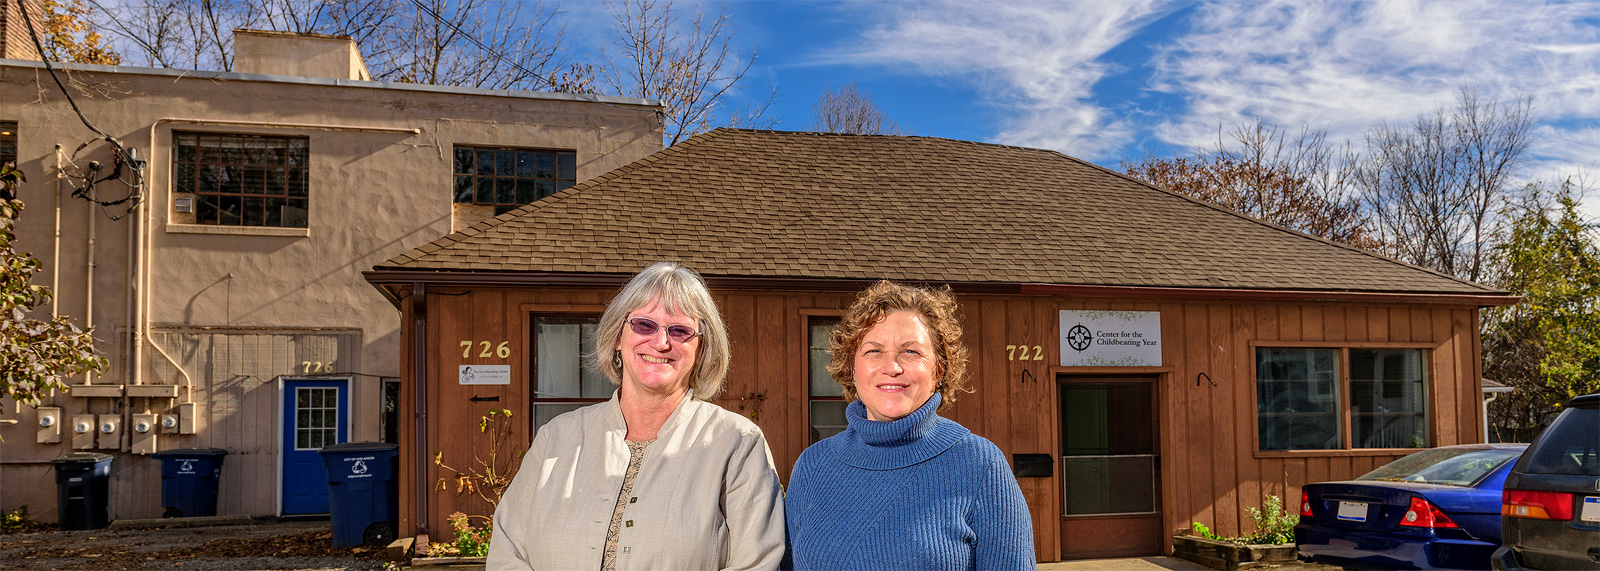 Patty Brennan and Merilynne Rush of After Death Home Care